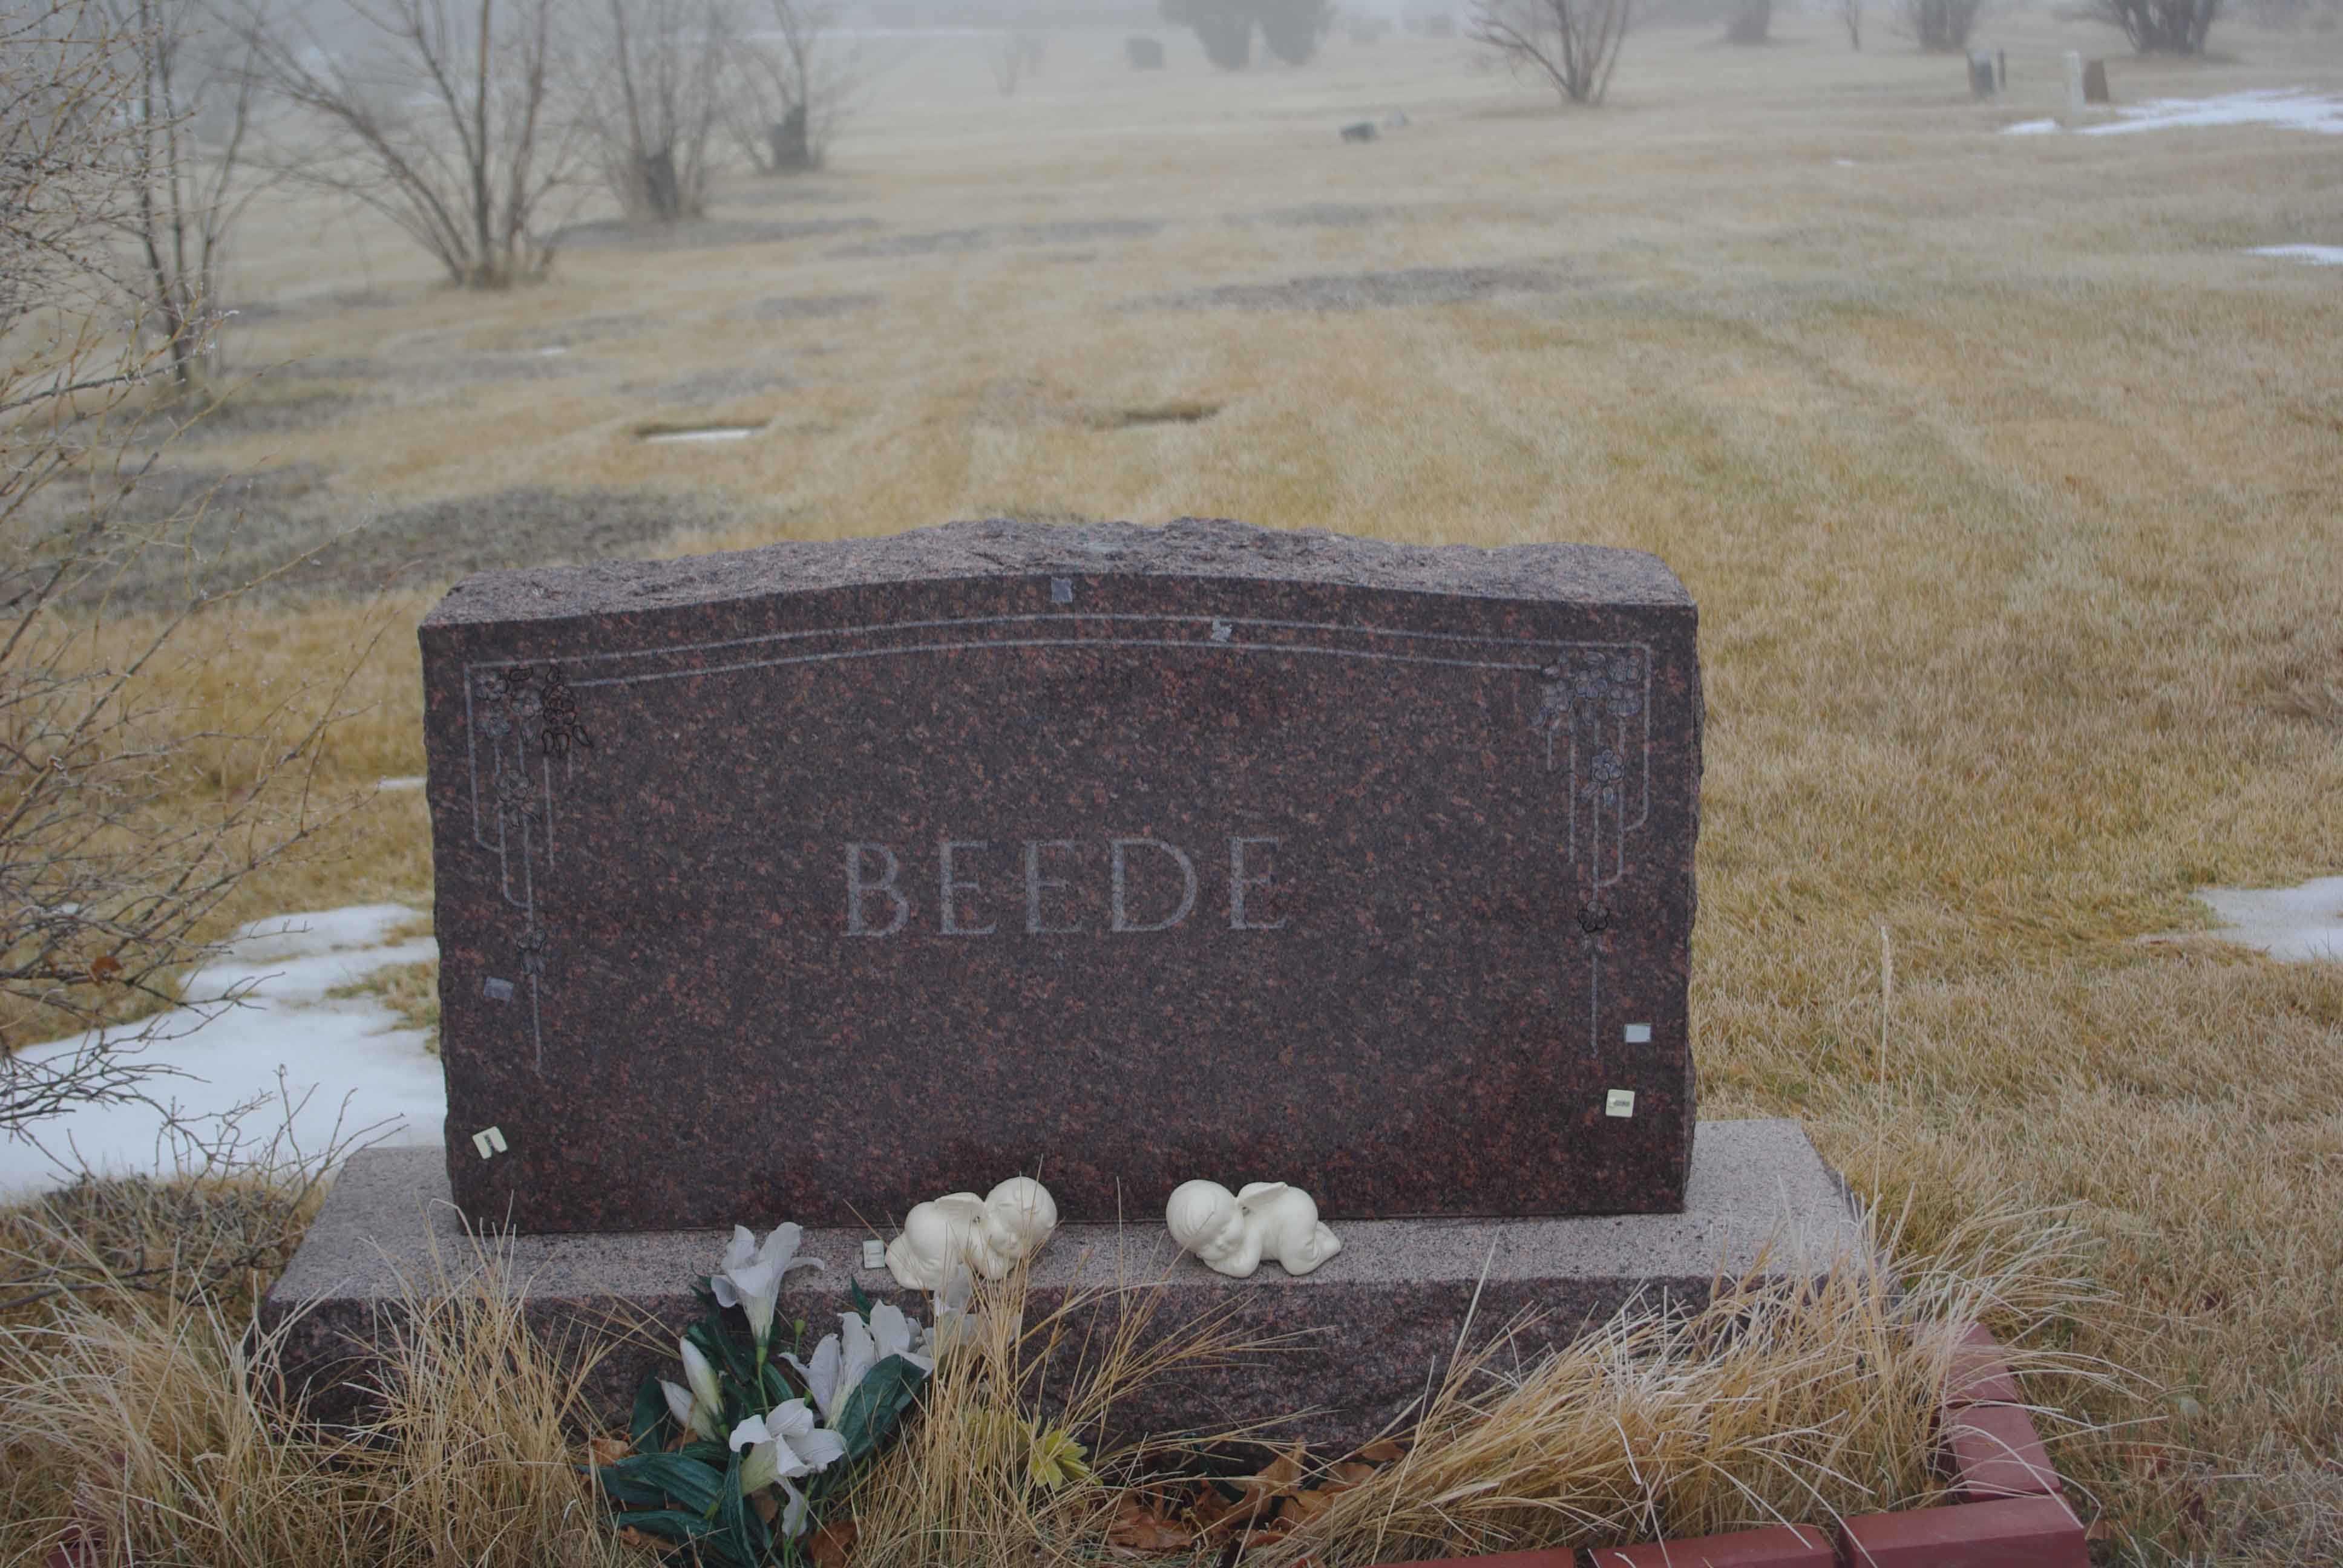 Curtis Iven Beede